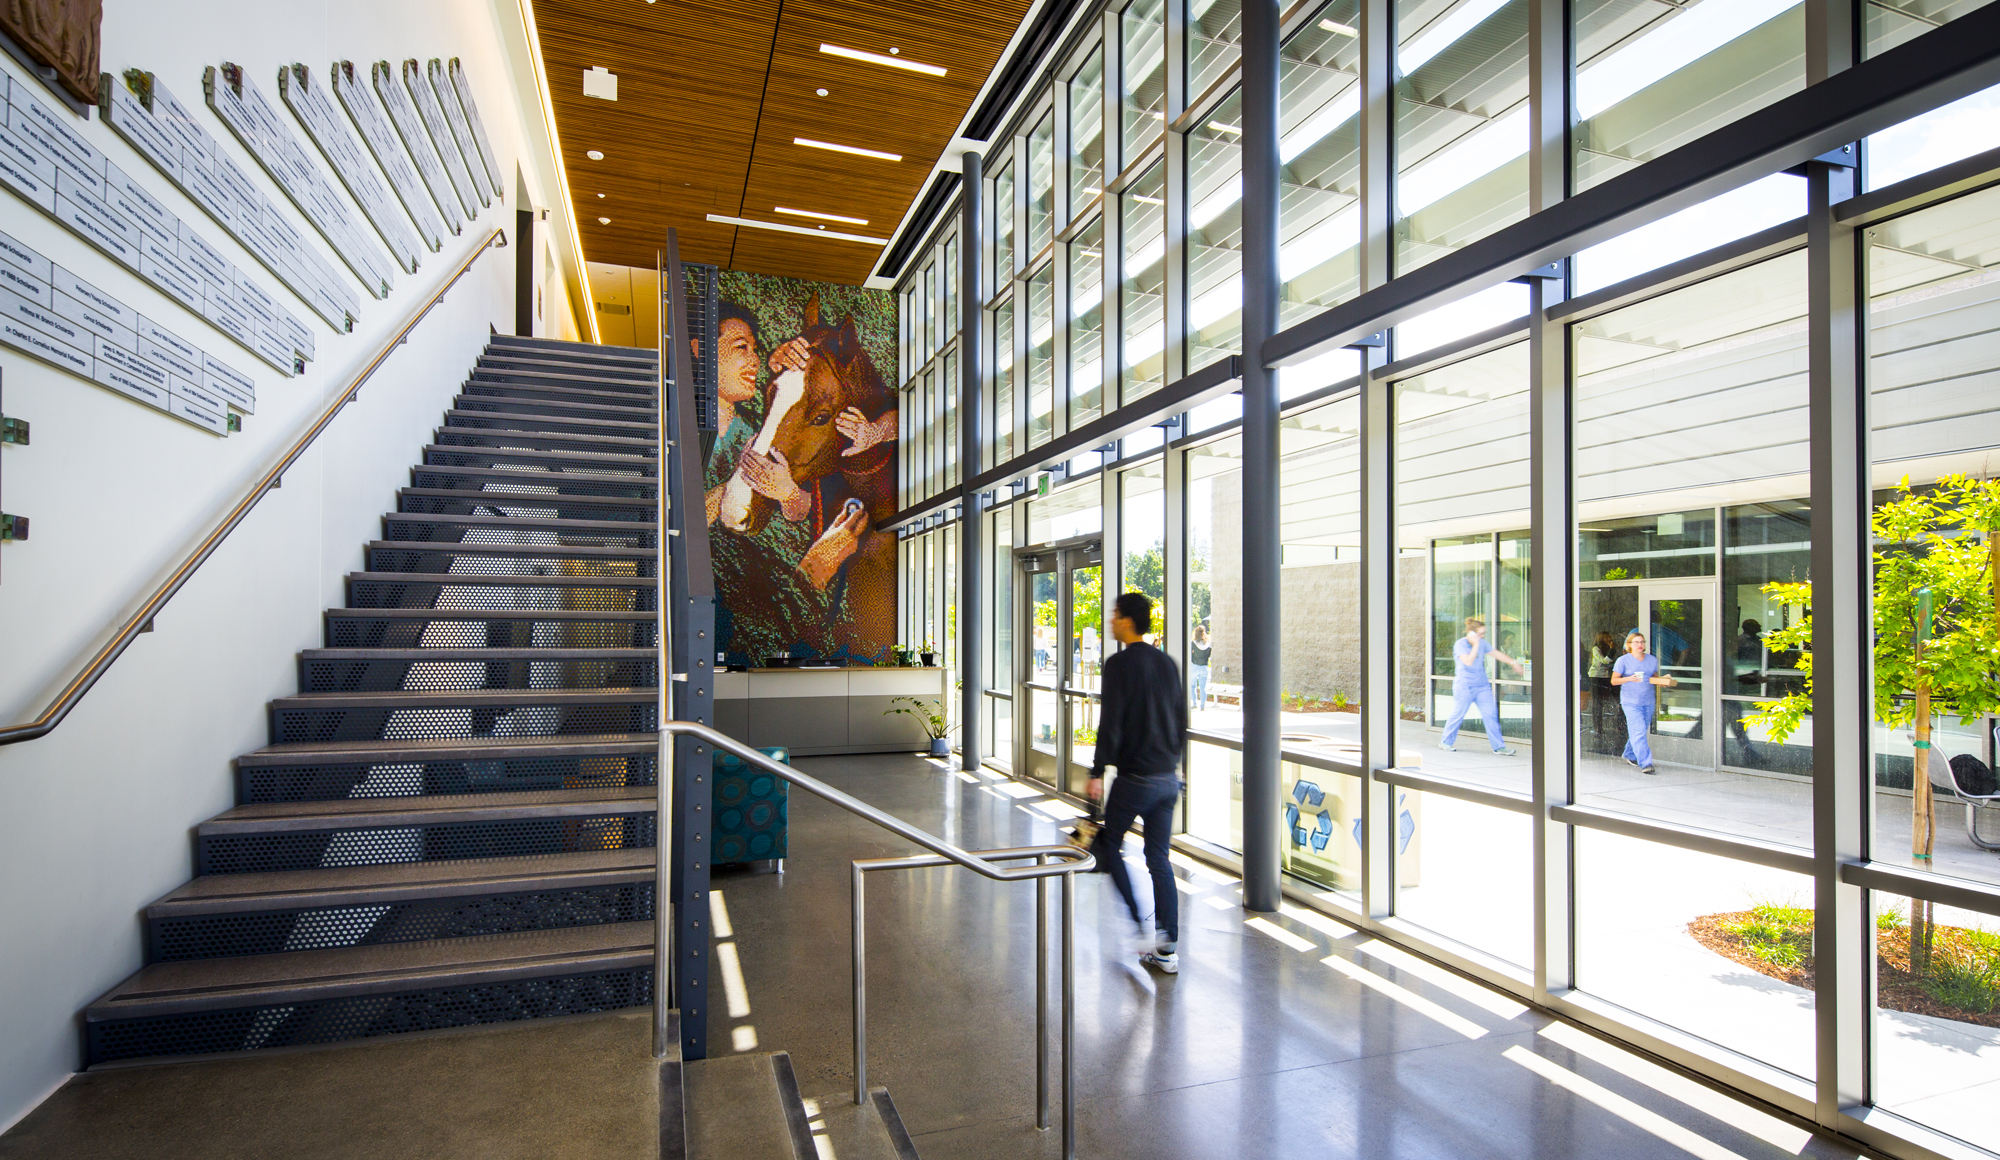 uc davis veterinary medicine student services and administration center